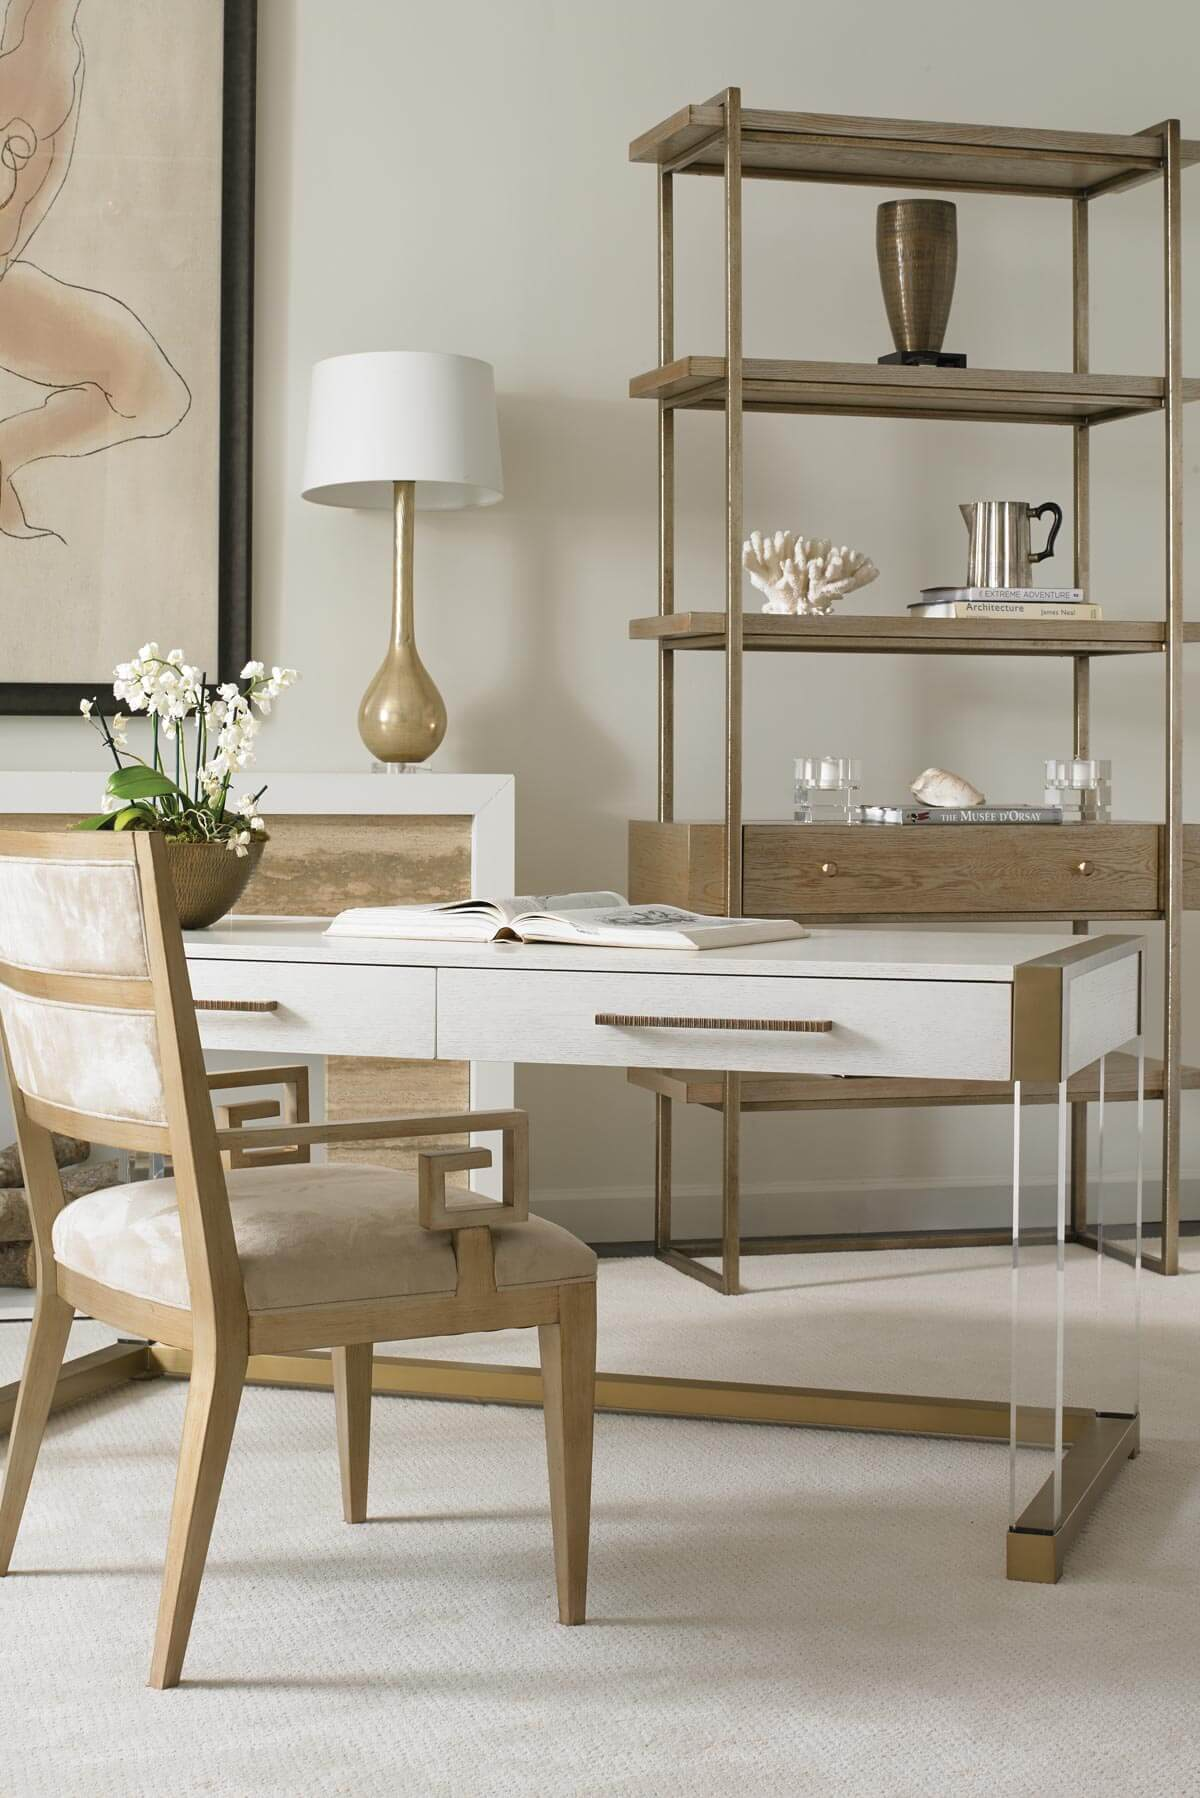 Hickory White settings to inspire your imagination